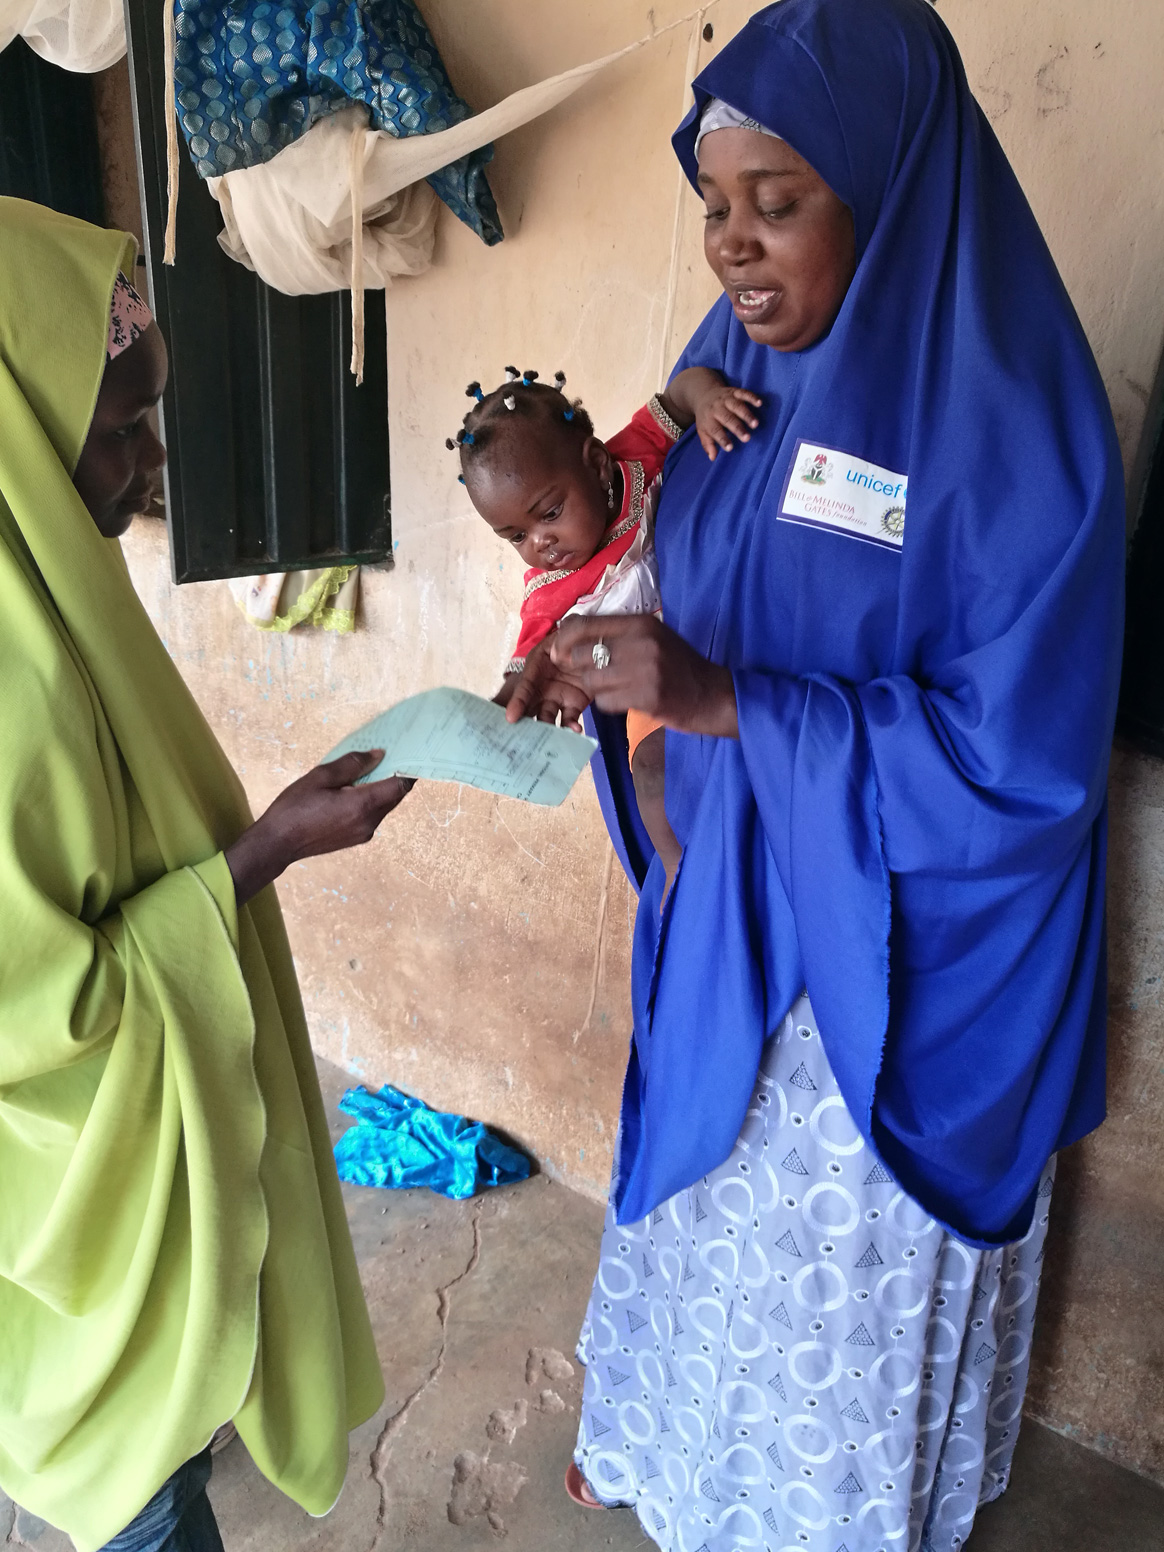 Hauwa inspects a baby's vaccination card. By building up trusting relationships with her community, her health advice gains credibility. © UNICEF/Nigeria